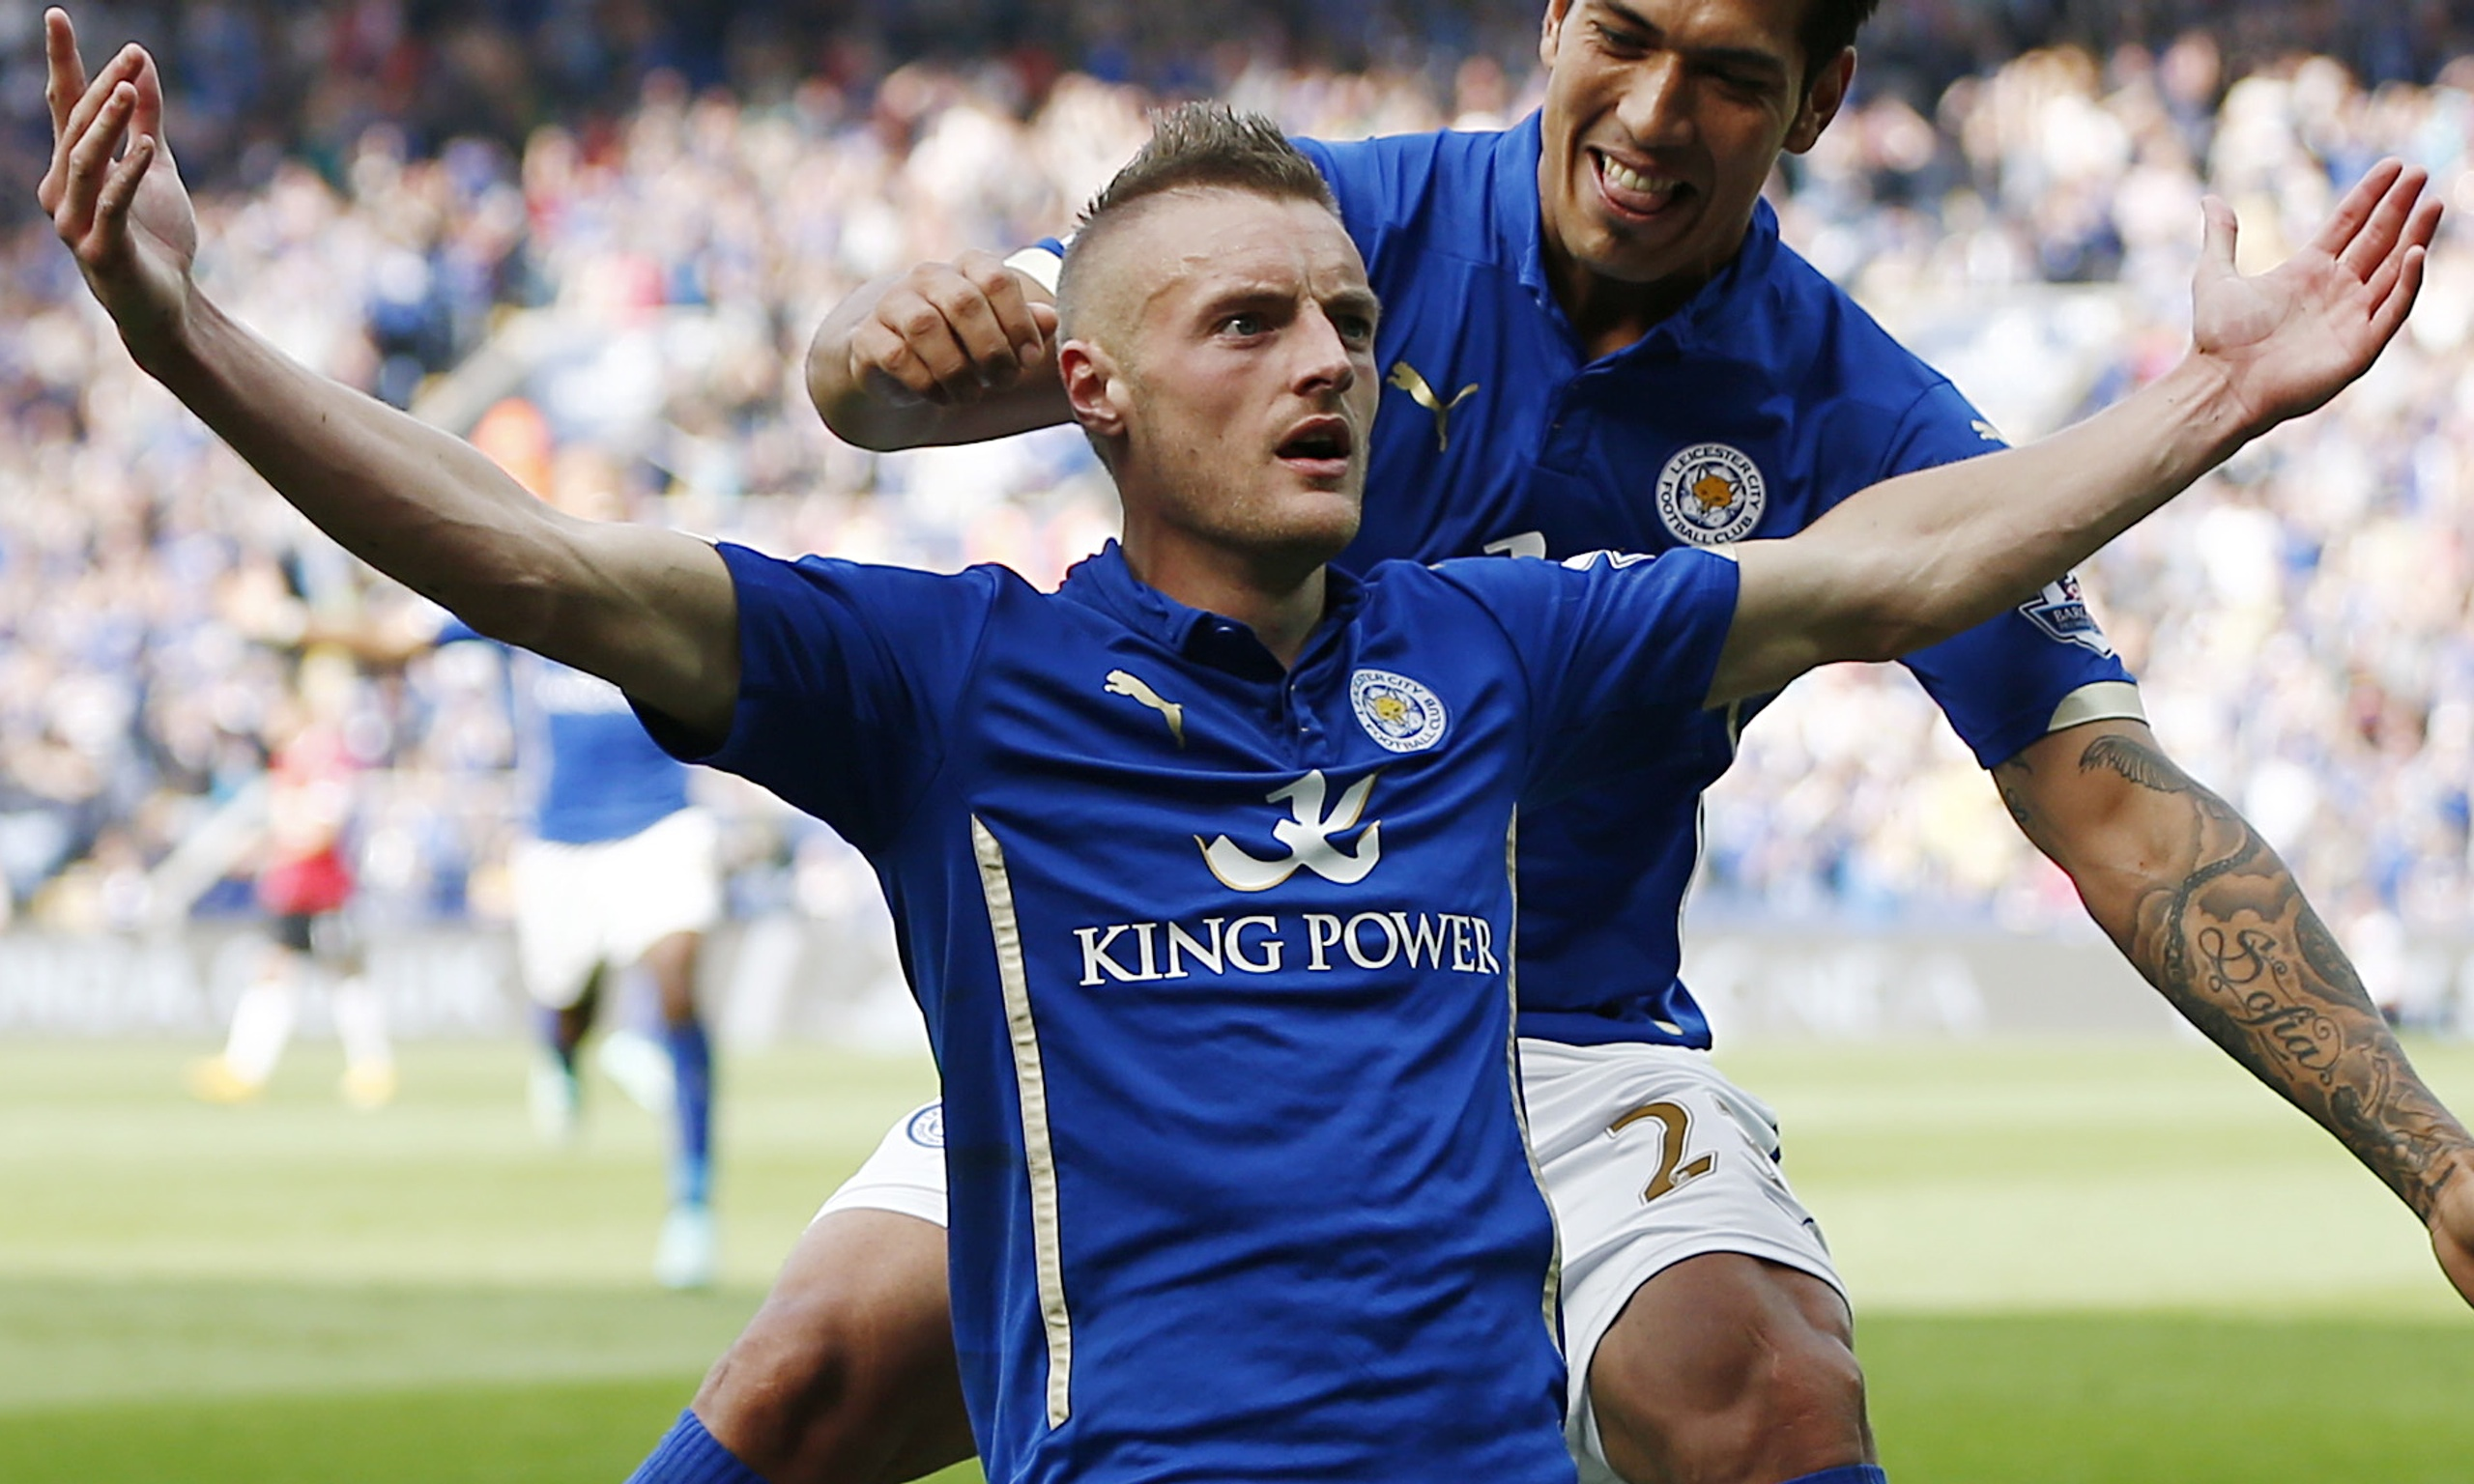 Jamie Vardy celebrates giving Leicester the lead with their fourth goal against Manchester United.